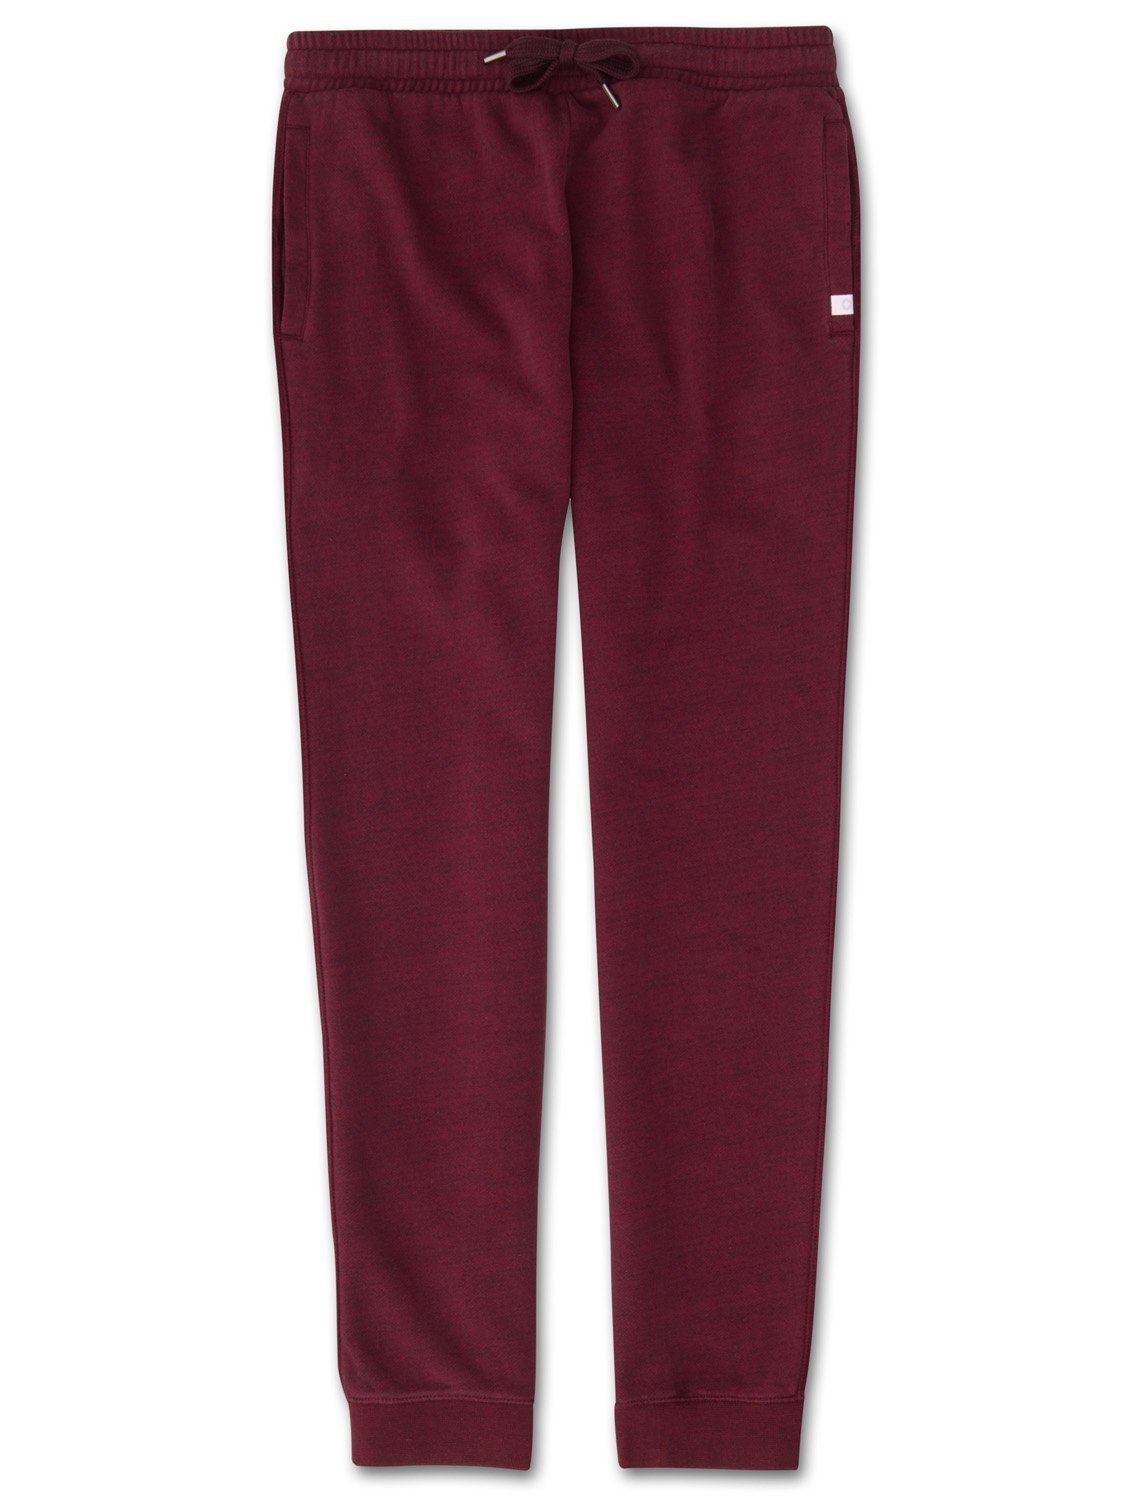 Men's Sweatpants Devon Loopback Cotton Burgundy